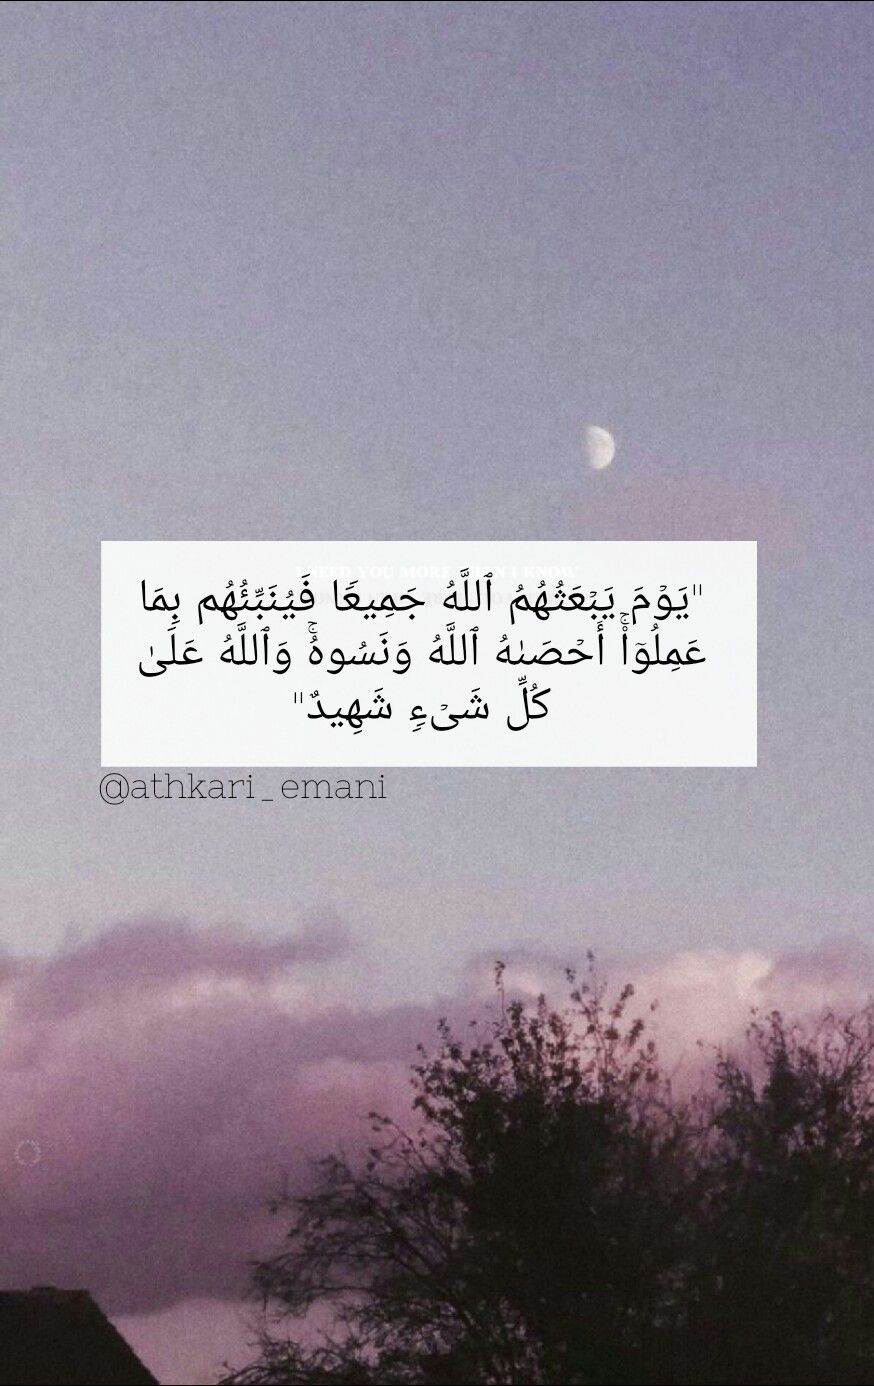 Pin By Eman Albusaidi On قرآن Quran Quotes Quran Beautiful Words